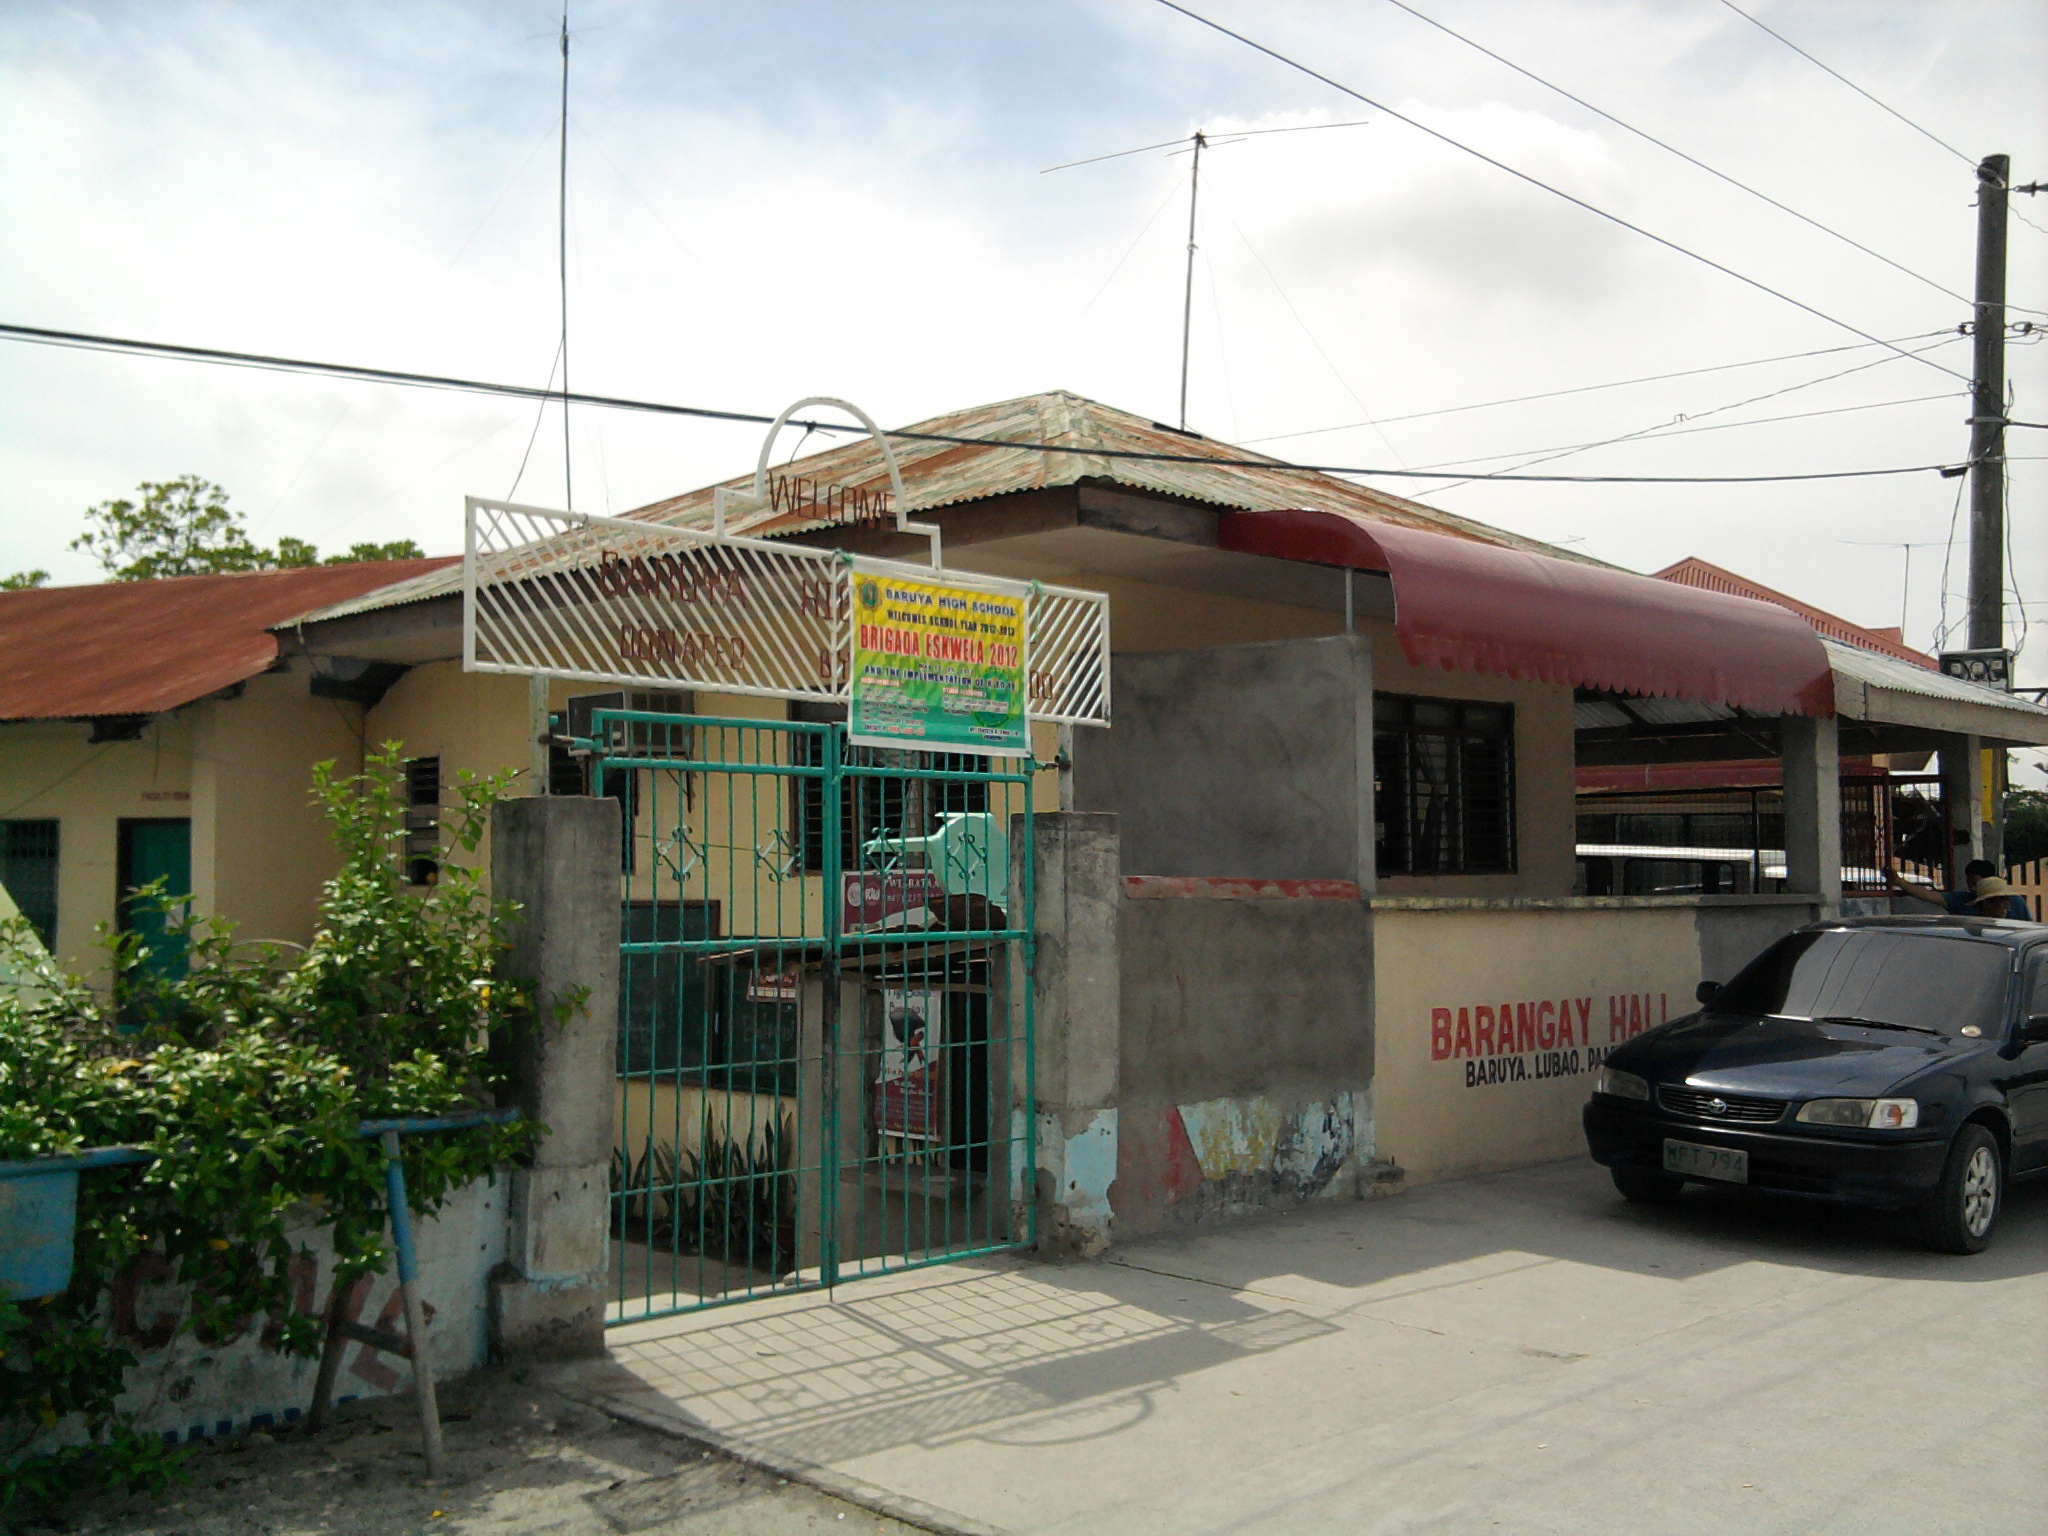 history of lubao Lovely 3 bedroom home in a quiet neighborhood with long term neighbors ready for your personal touches close to schools, parks, shopping, public transit.